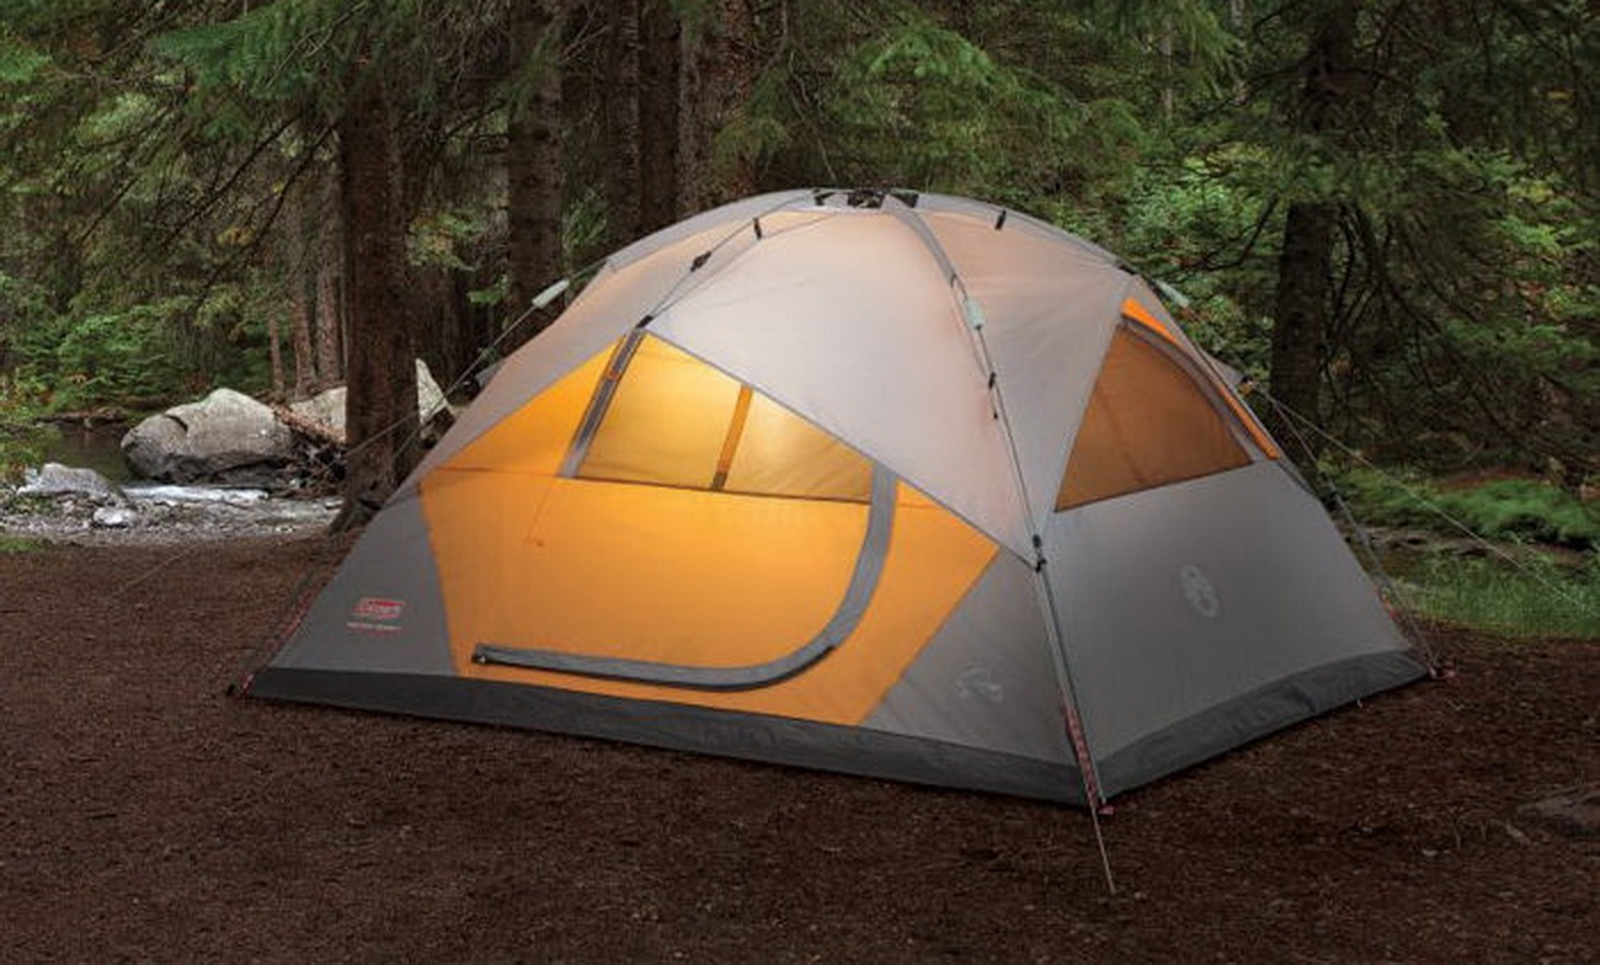 Free ... : tents 5 person - memphite.com